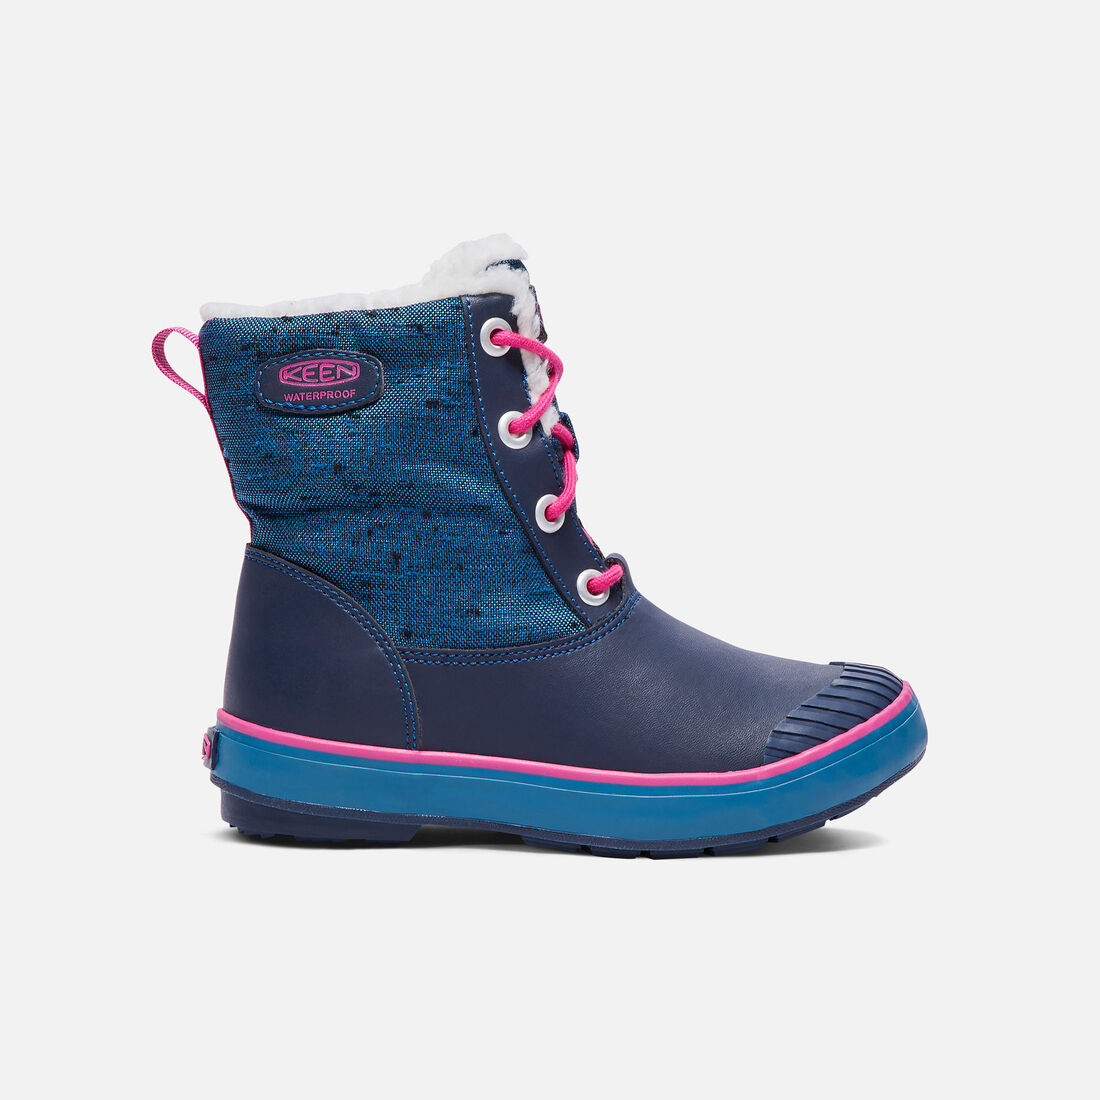 Big Kids' Elsa Boot in Ink Blue/Very Berry - large view.